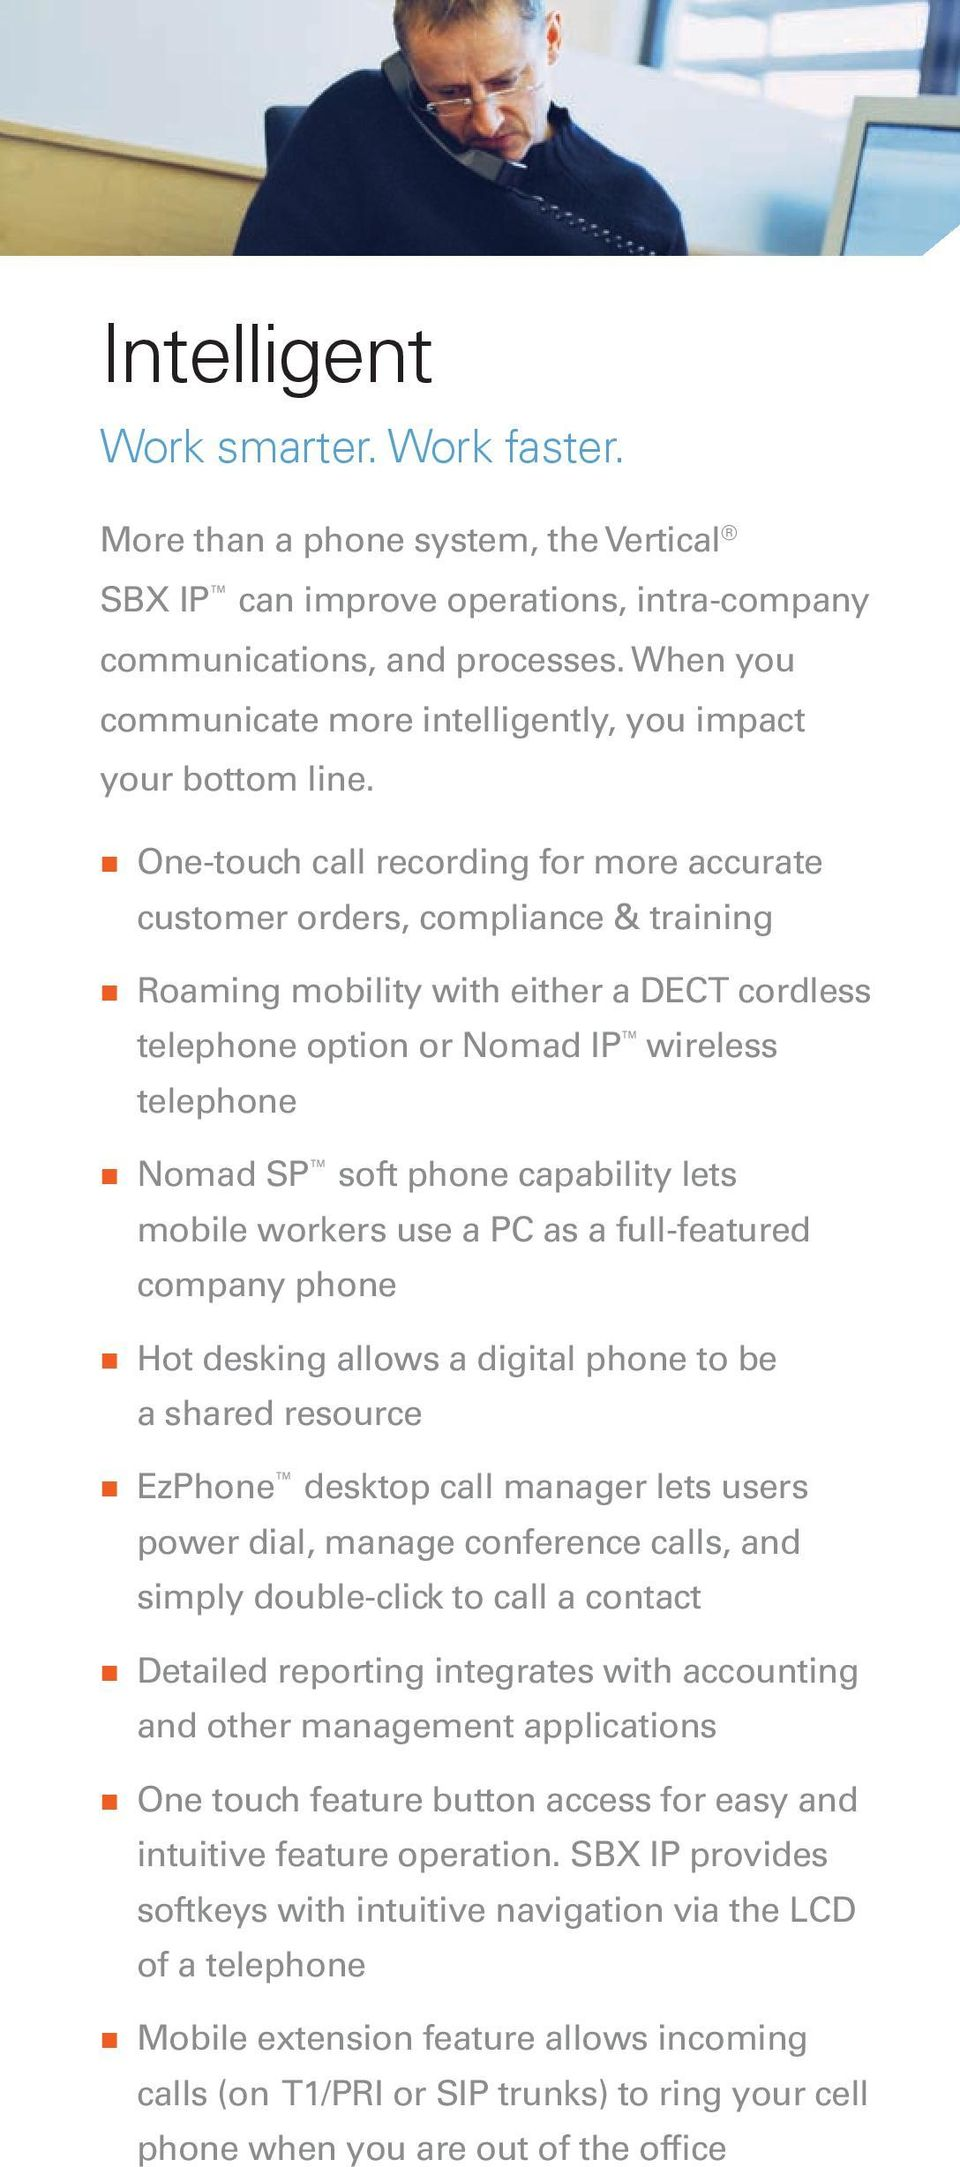 One-touch call recording for more accurate customer orders, compliance & training Roaming mobility with either a DECT cordless telephone option or Nomad IP wireless telephone Nomad SP soft phone